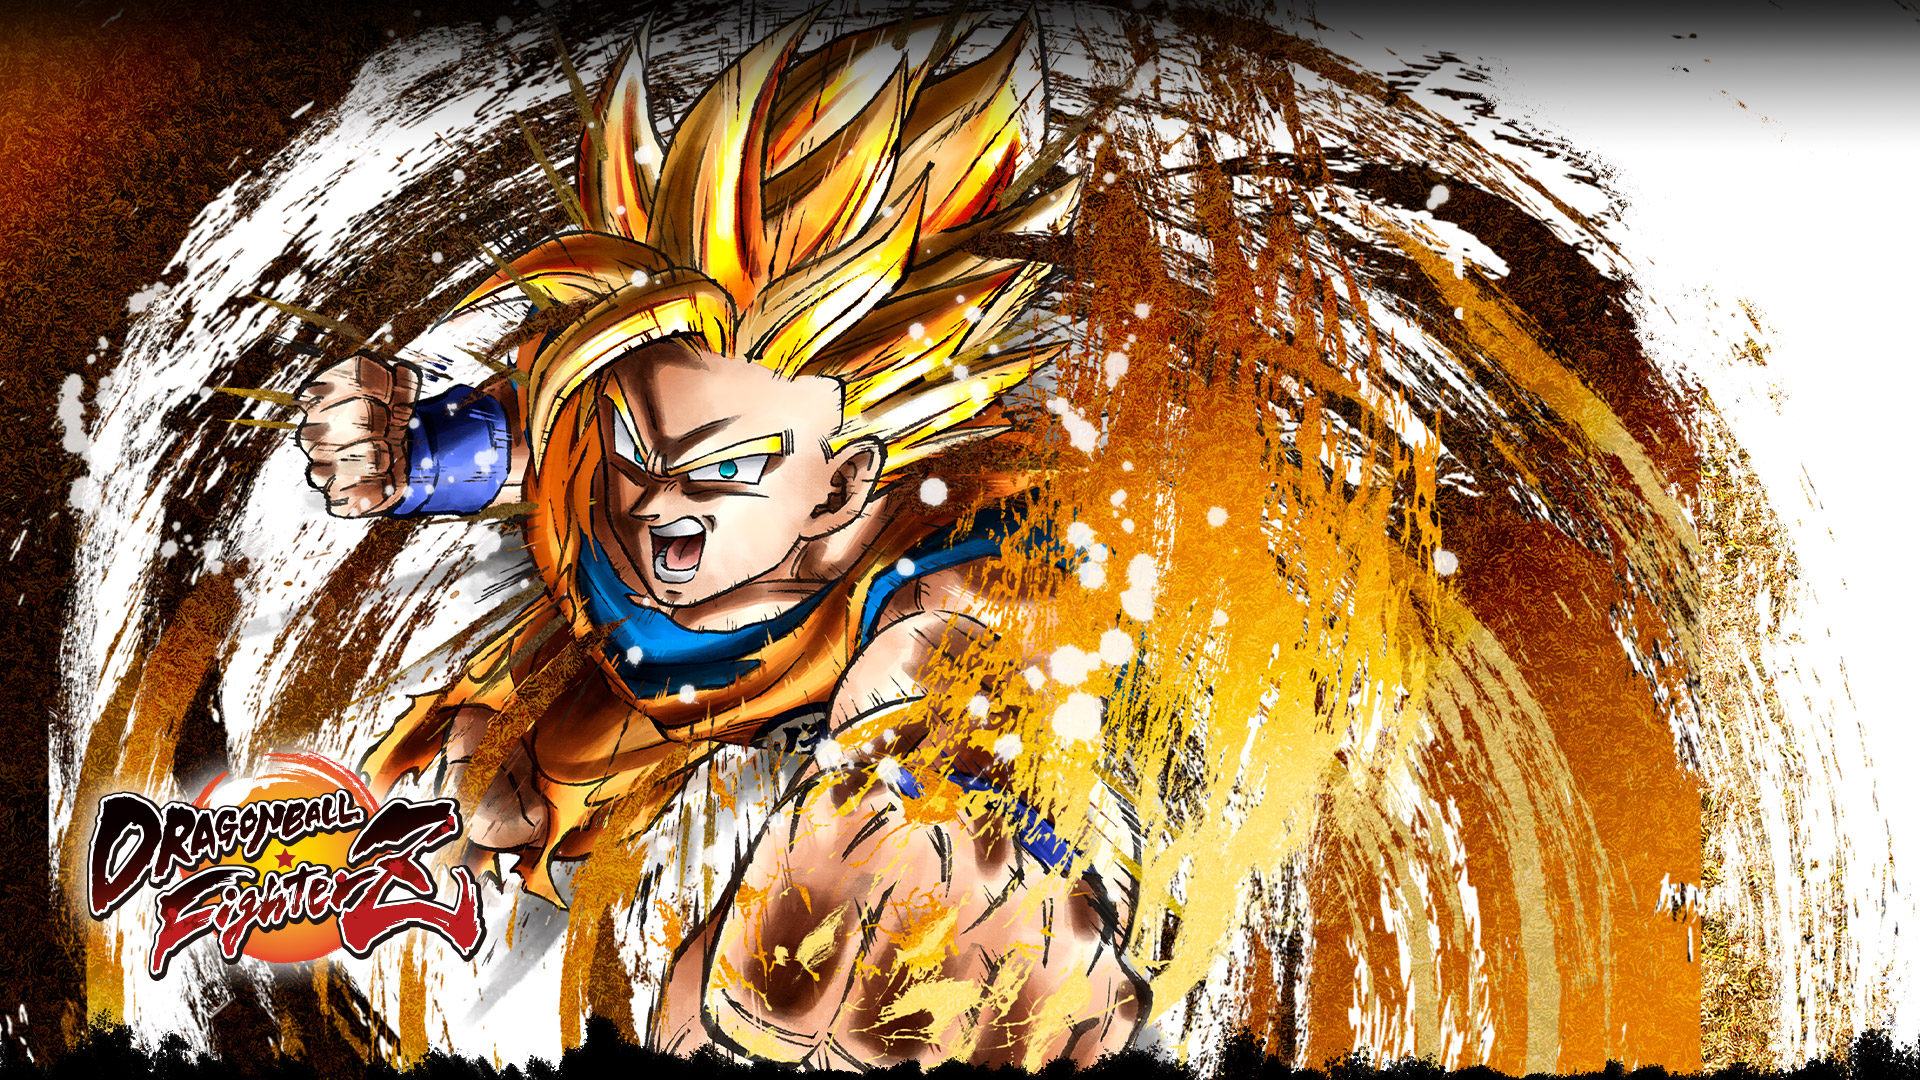 Super Saiyan Goku leaping forward with a flaming fist